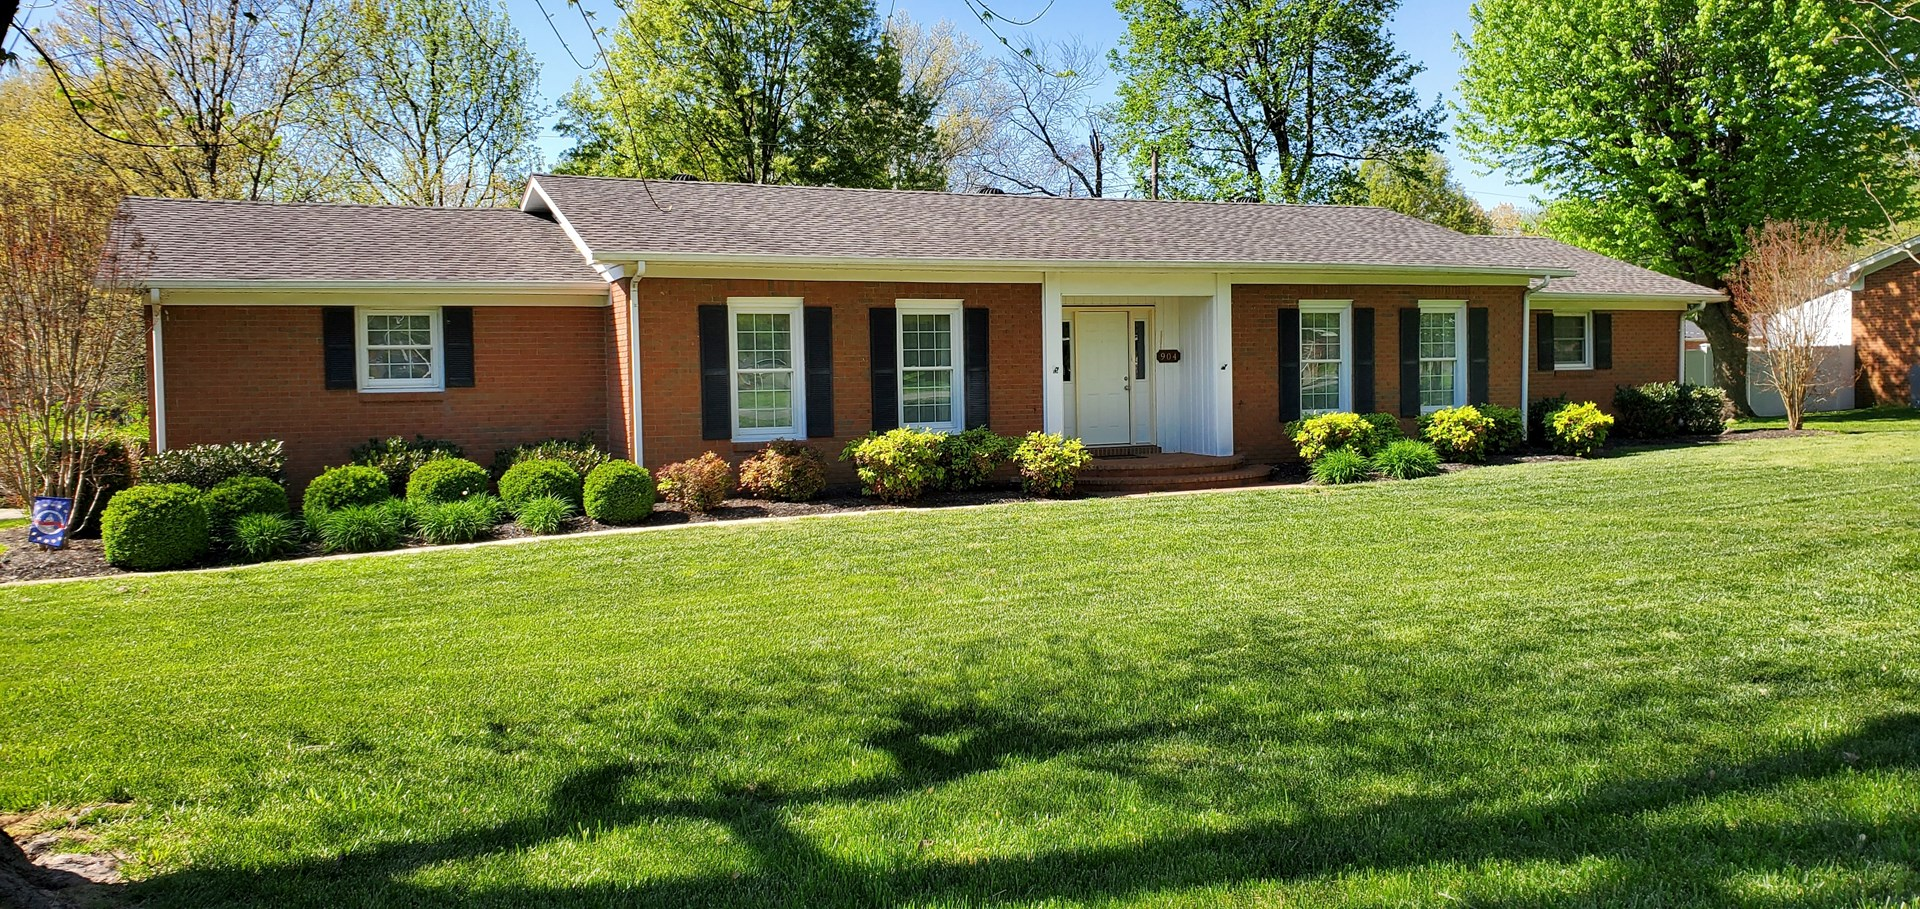 Great 3 bedroom 2 bath brick home for sale in Franklin Ky.